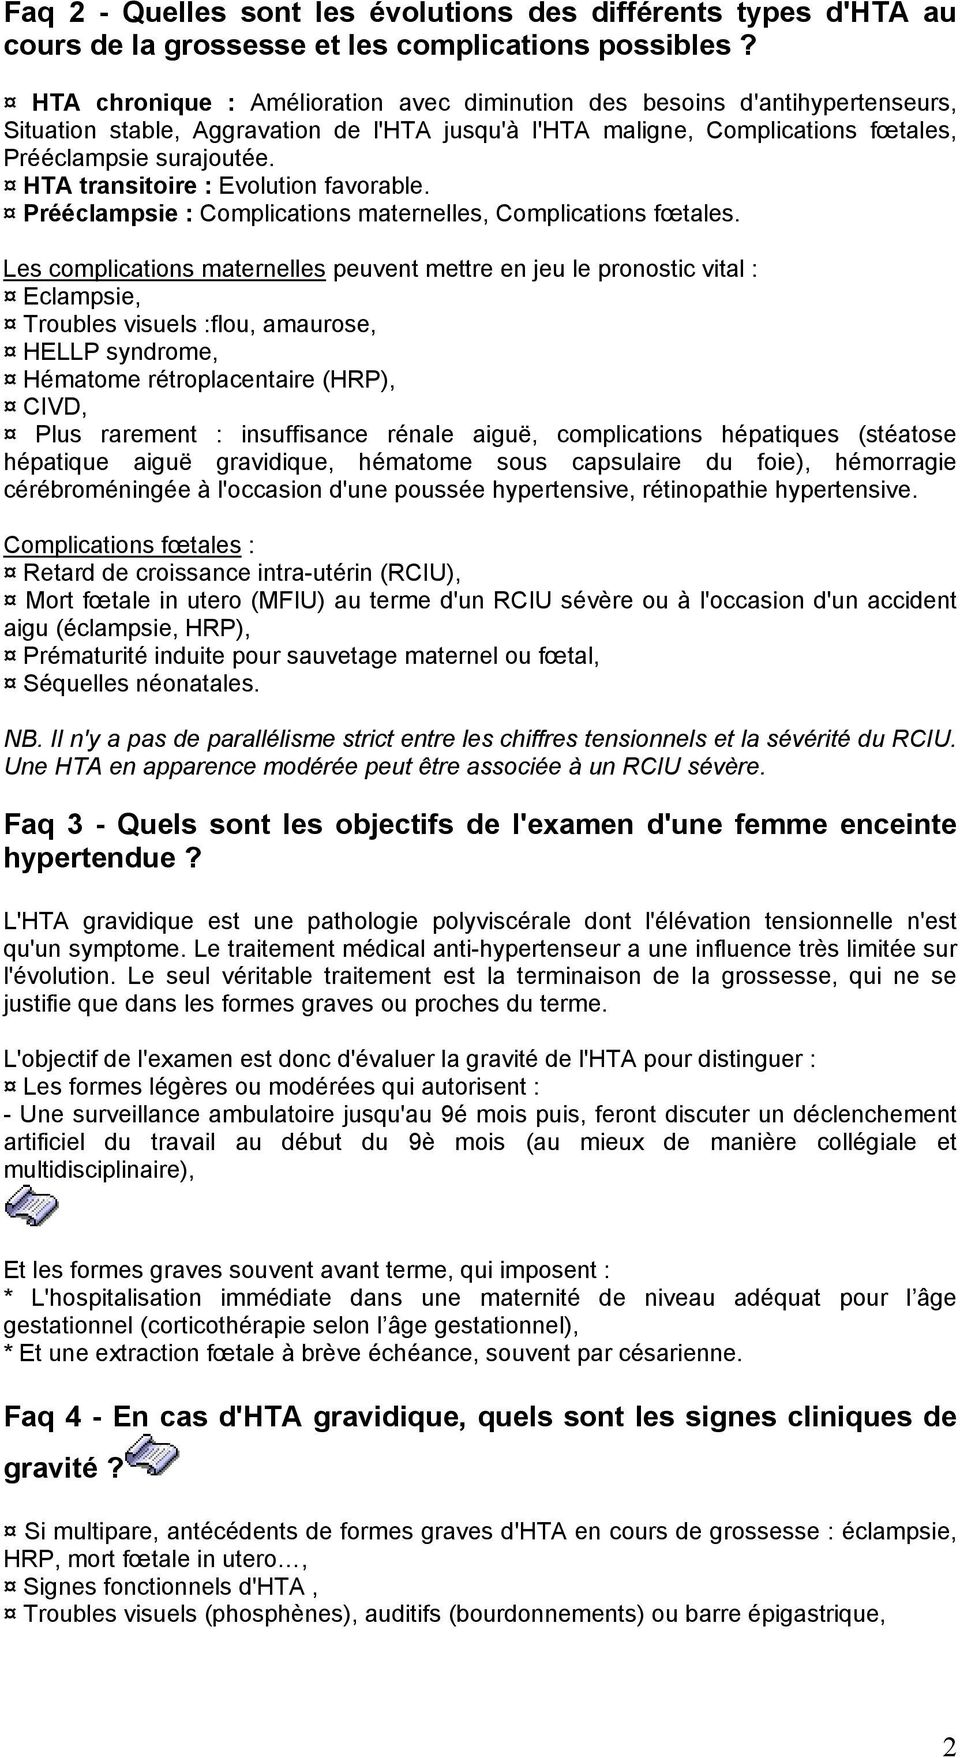 HTA transitoire : Evolution favorable. Prééclampsie : Complications maternelles, Complications fœtales.